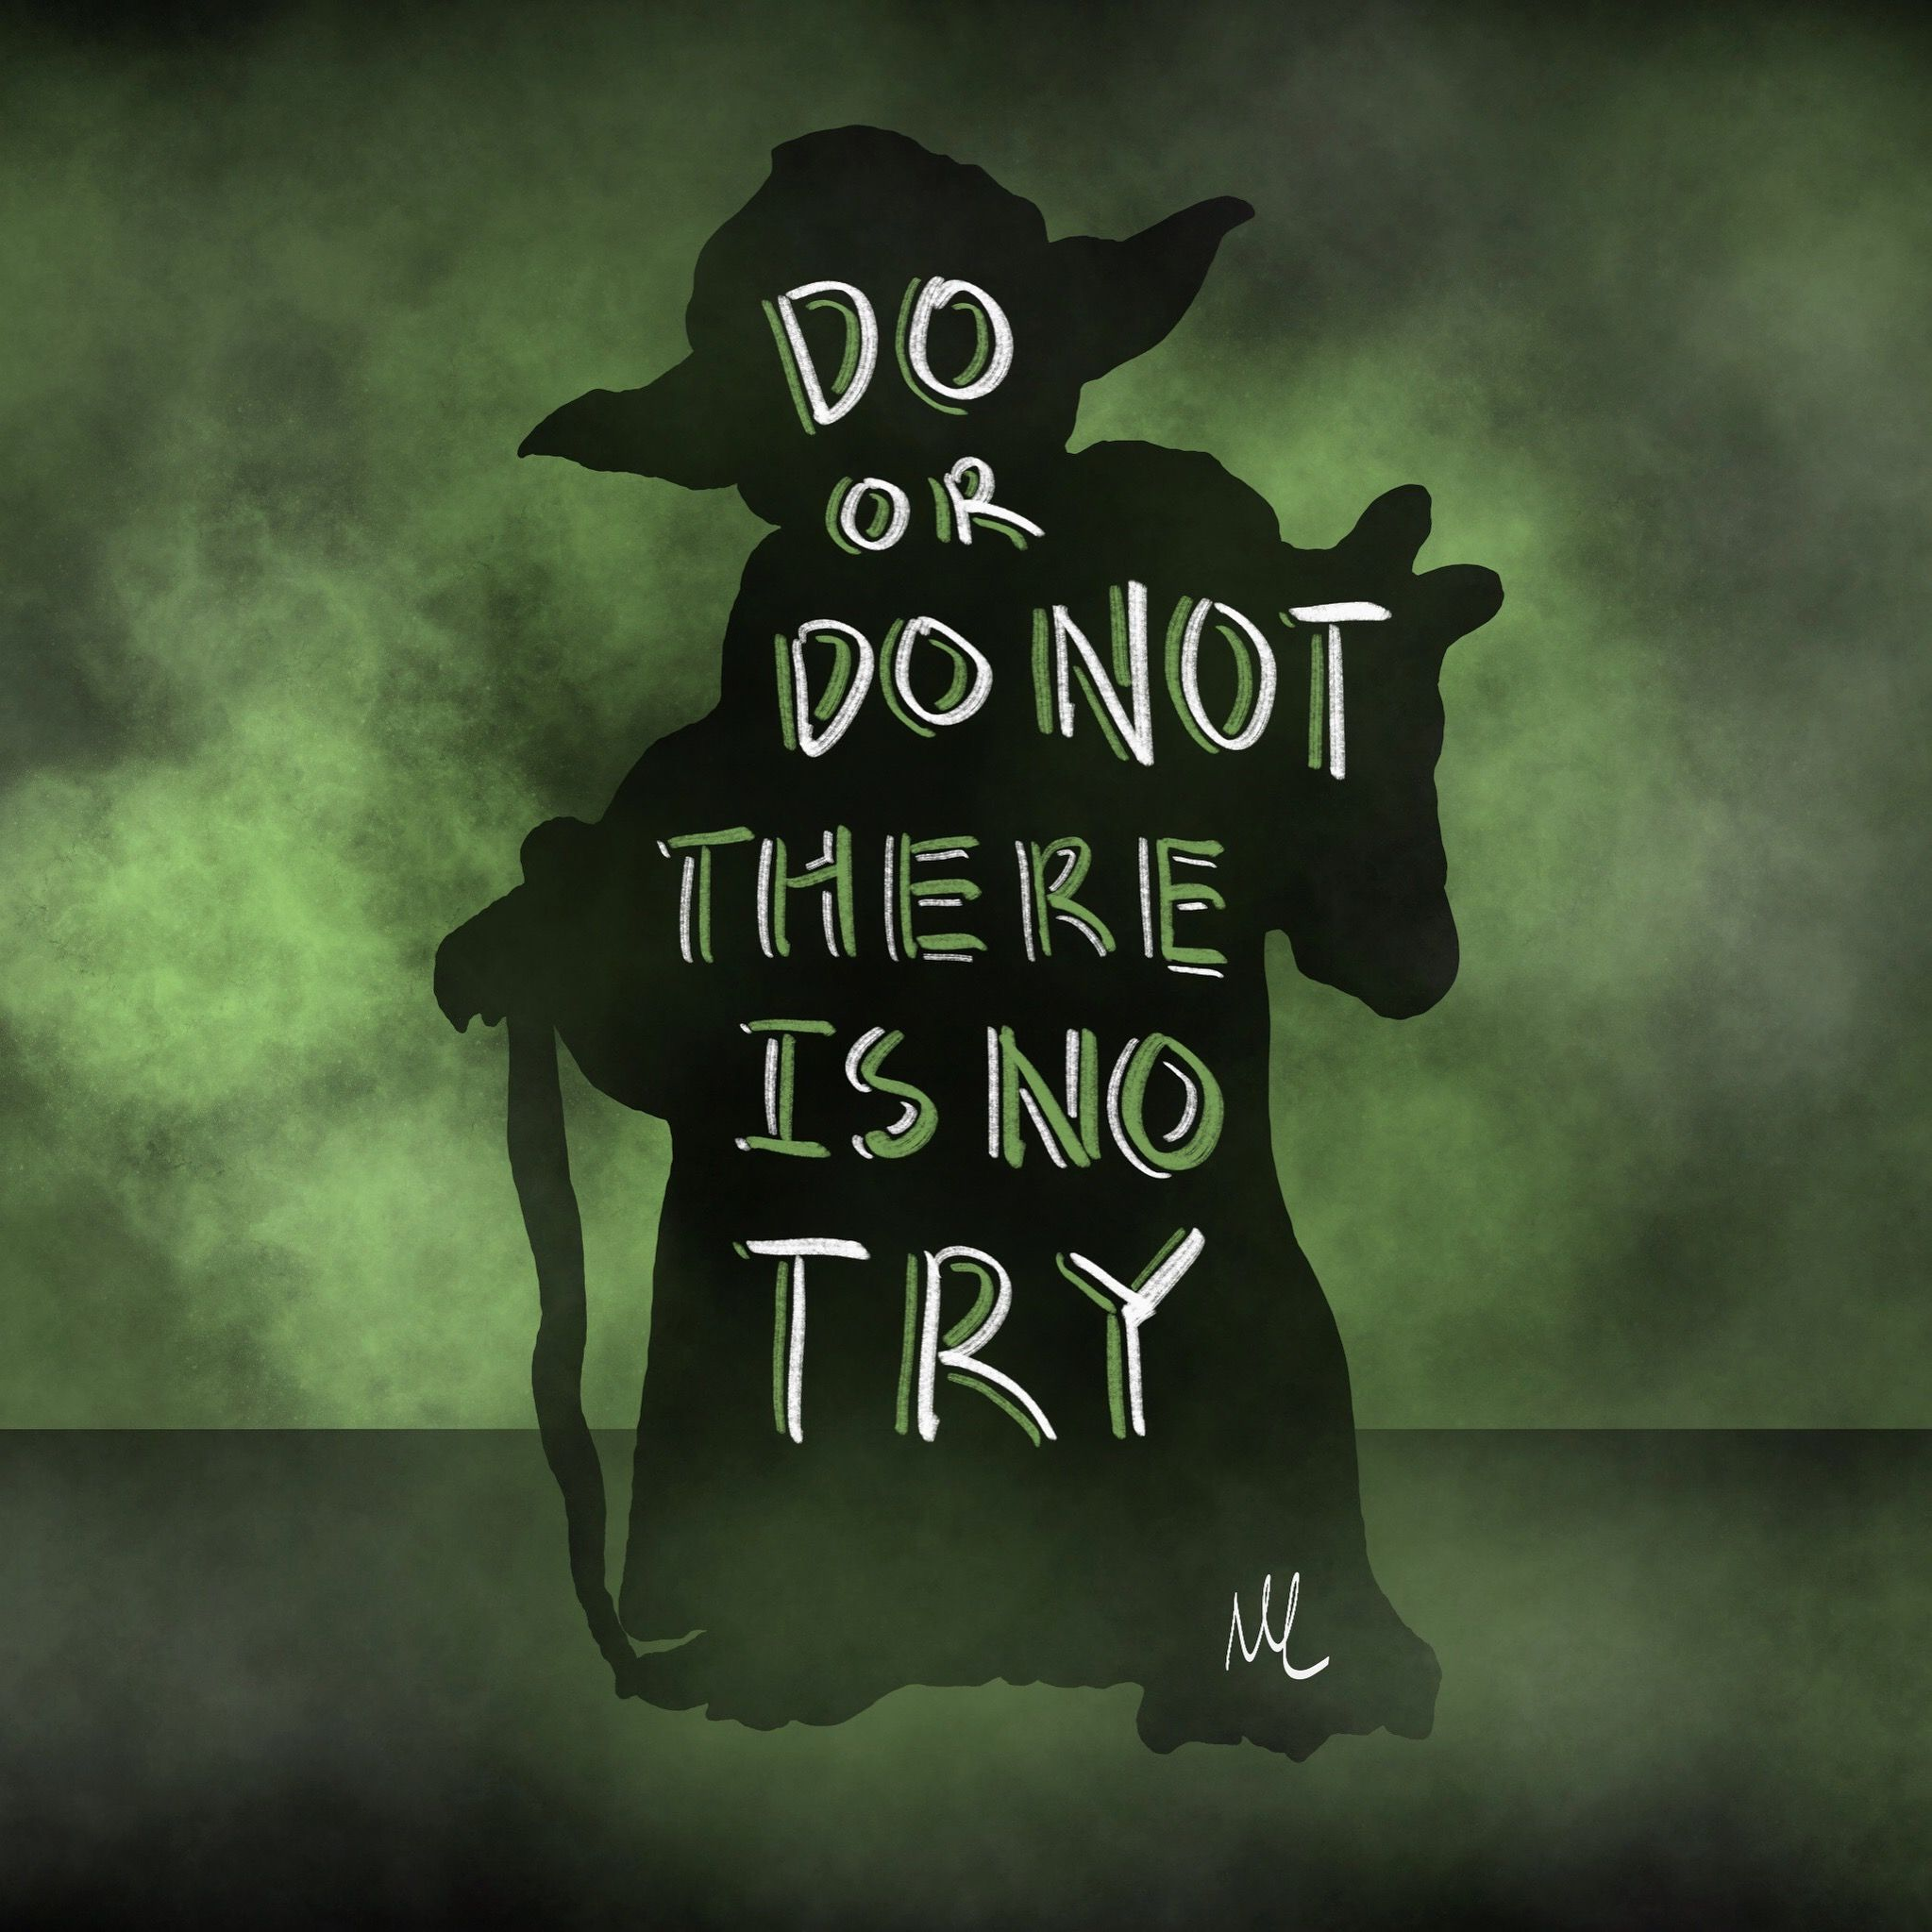 Syndrome of insufficient milk supply and the wisdom of Yoda